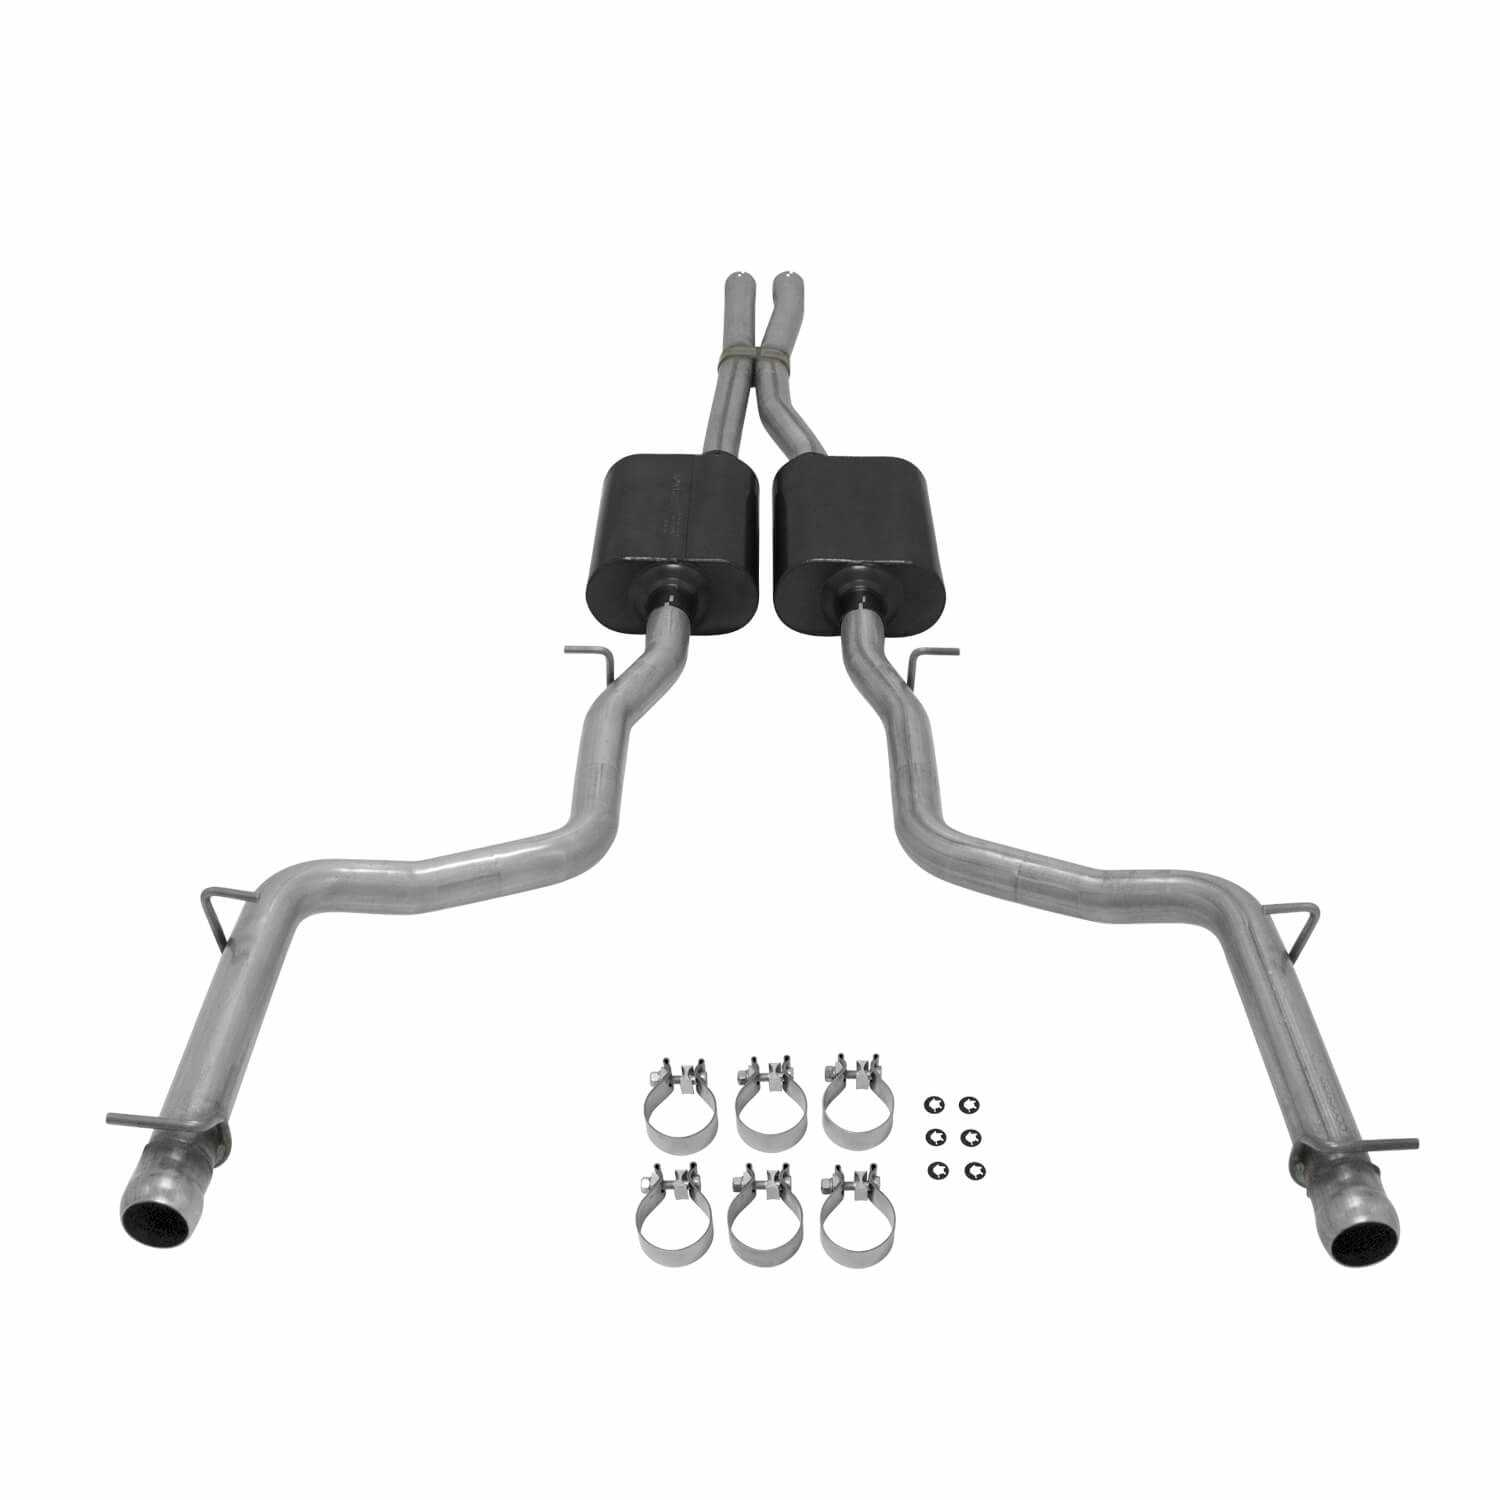 817716 Flowmaster American Thunder Cat Back Exhaust System